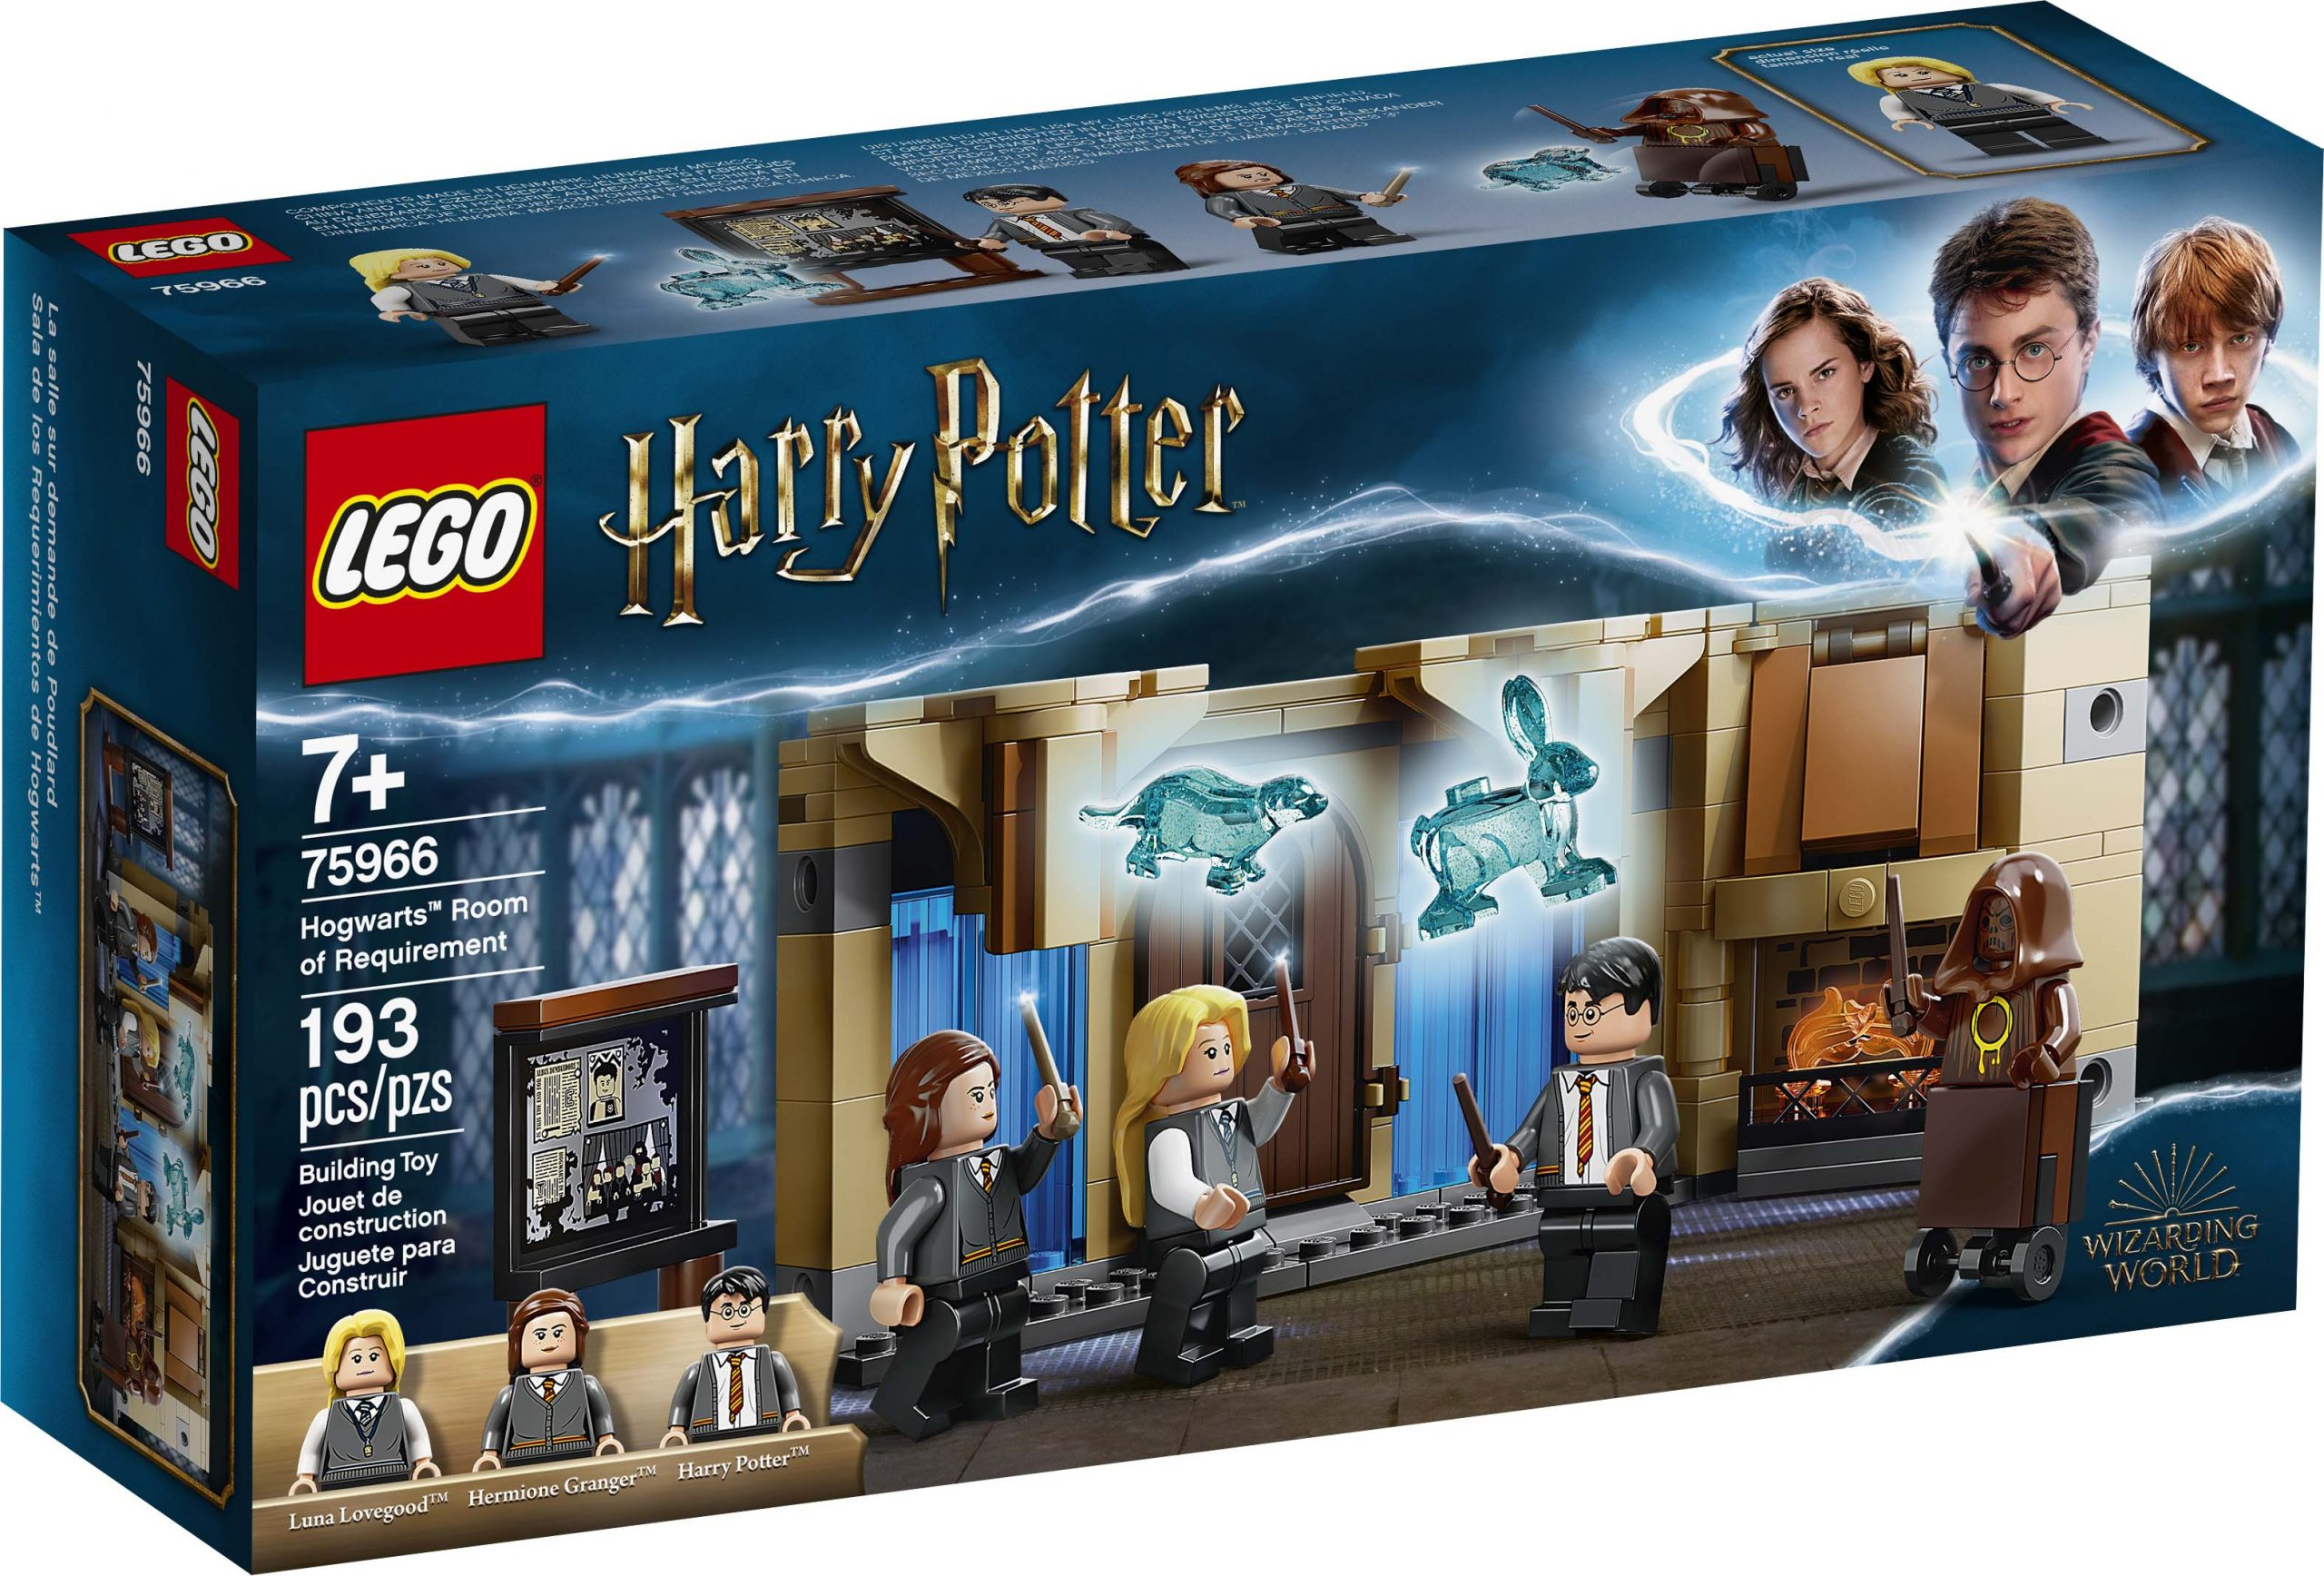 LEGO-Harry-Potter-Hogwarts-Room-of-Requirement-75966